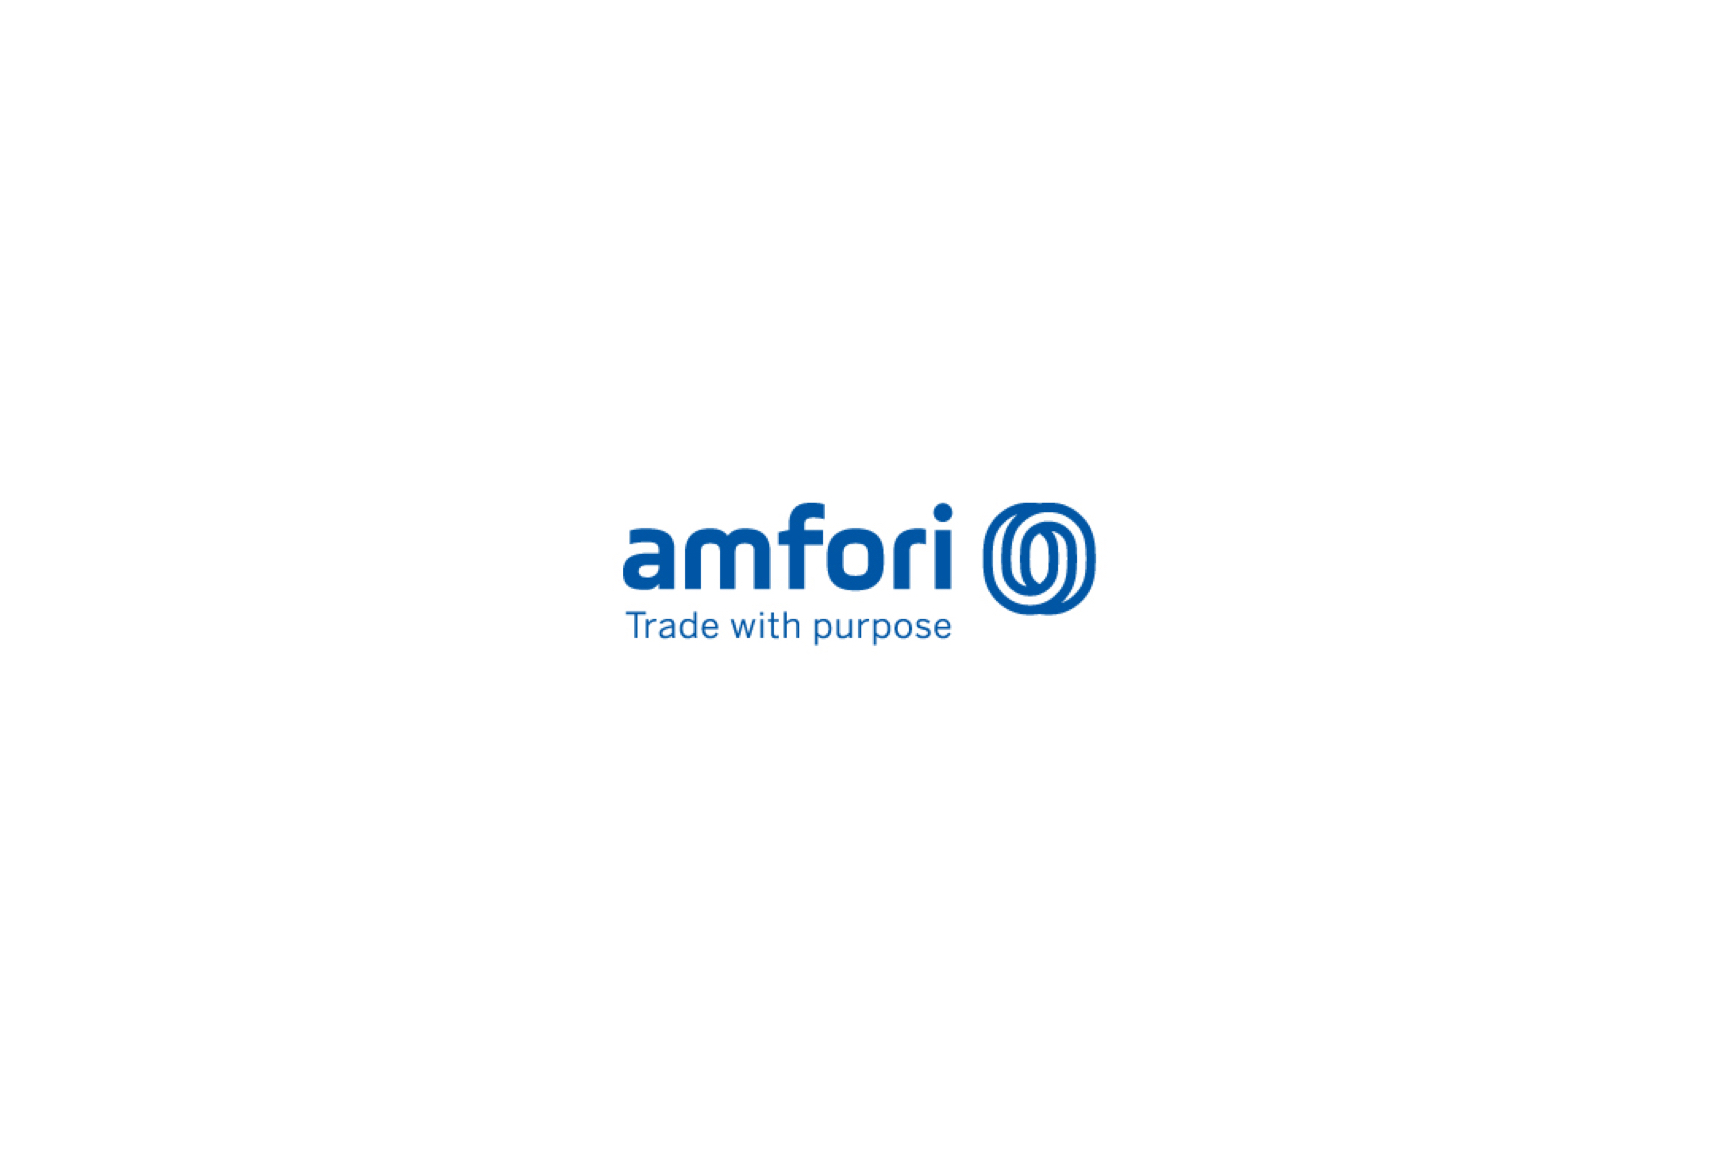 amfori trade with purpose logo